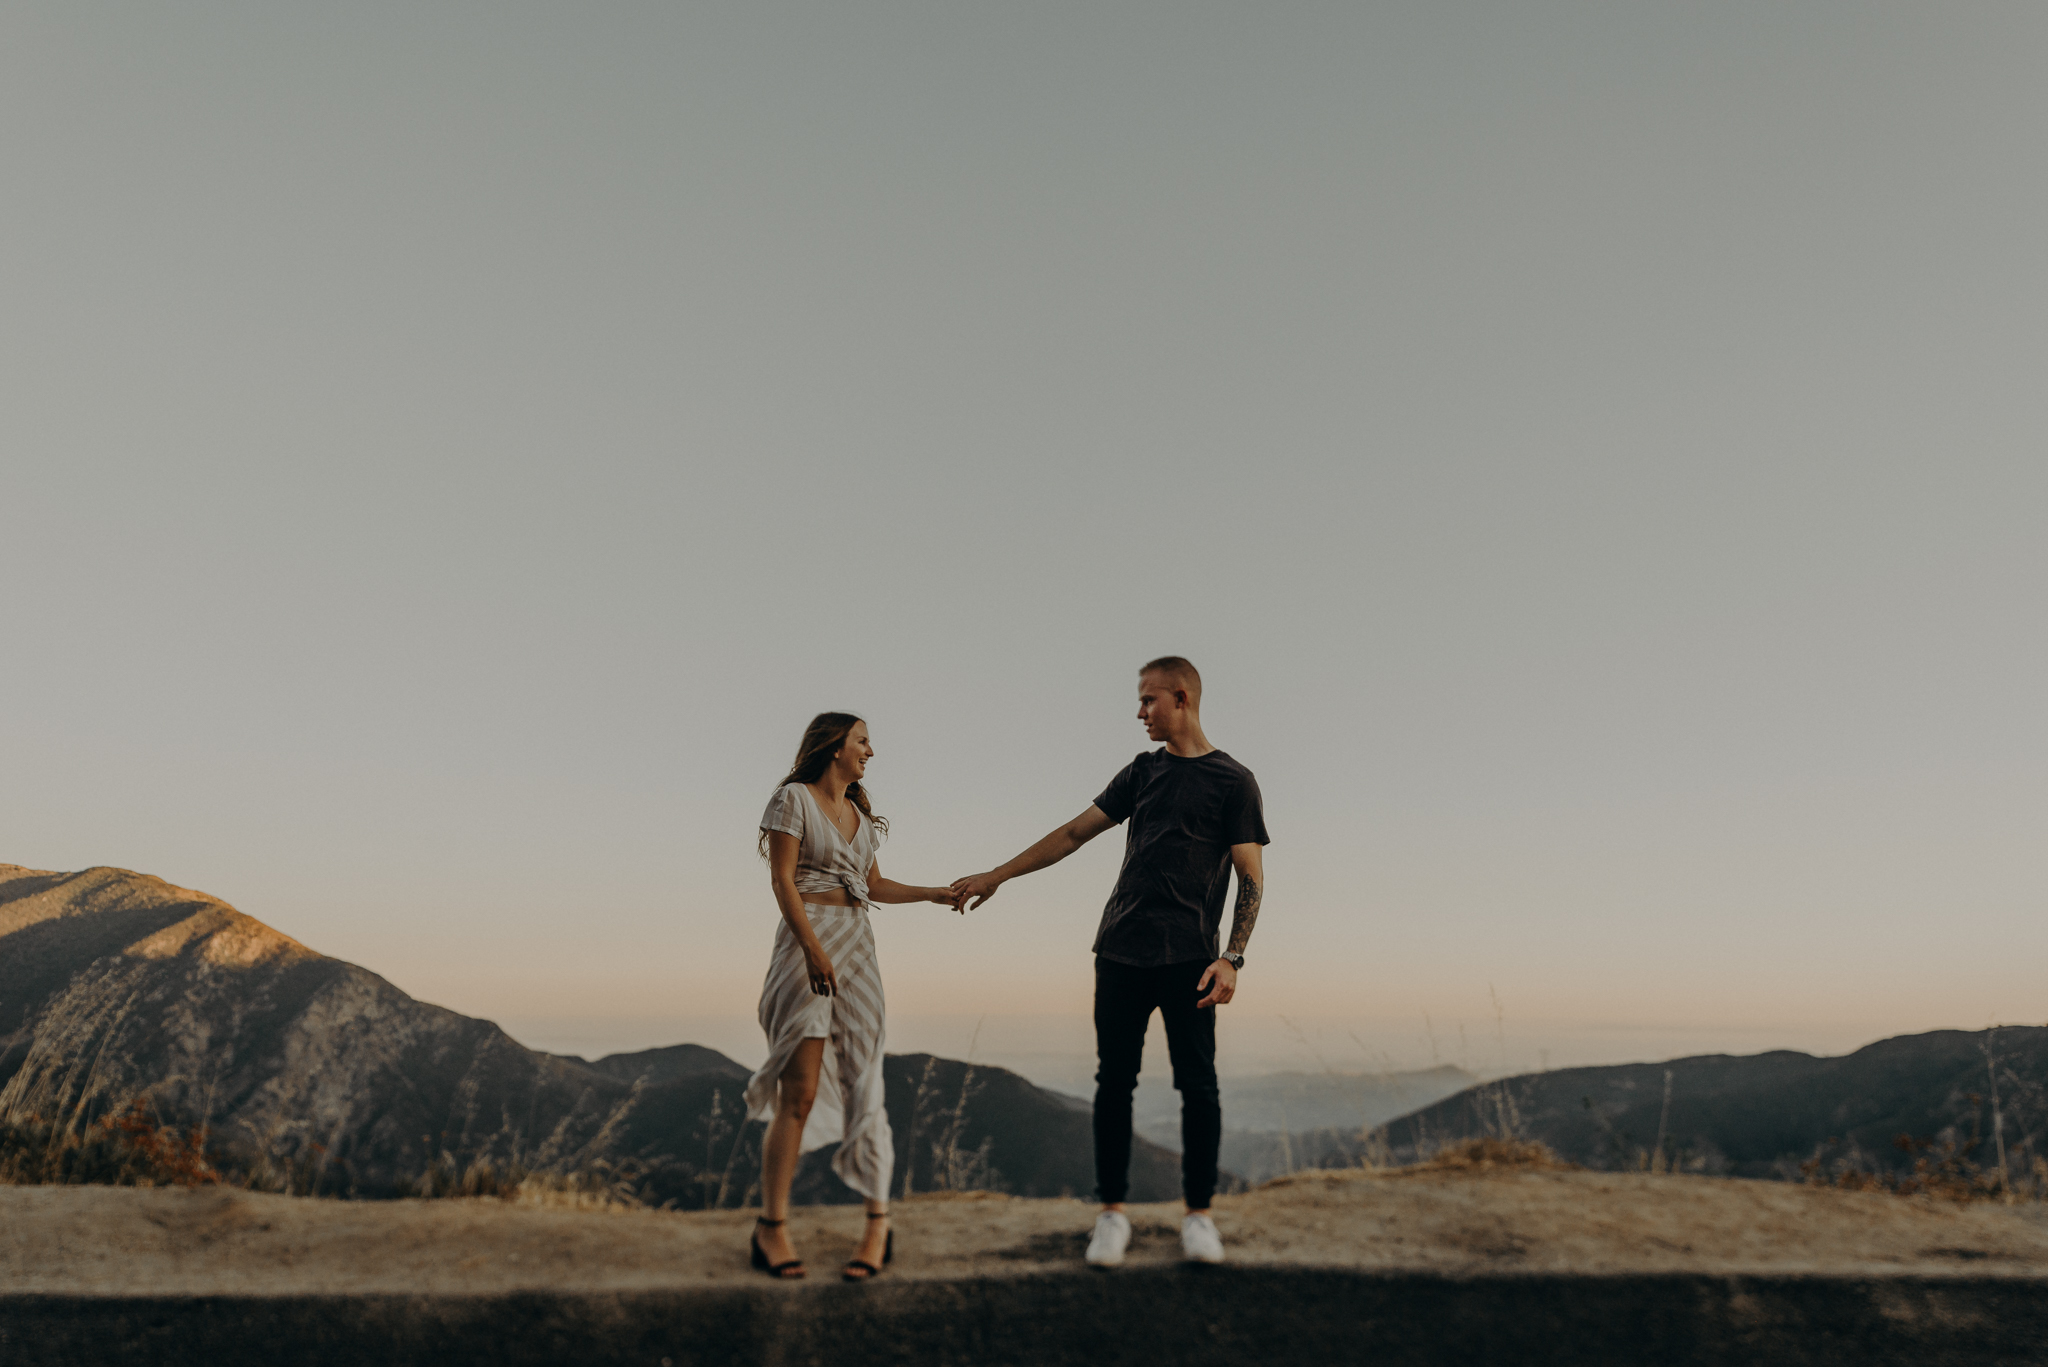 Isaiah + Taylor Photography - Los Angeles Forest Engagement Session - Laid back wedding photographer-005.jpg